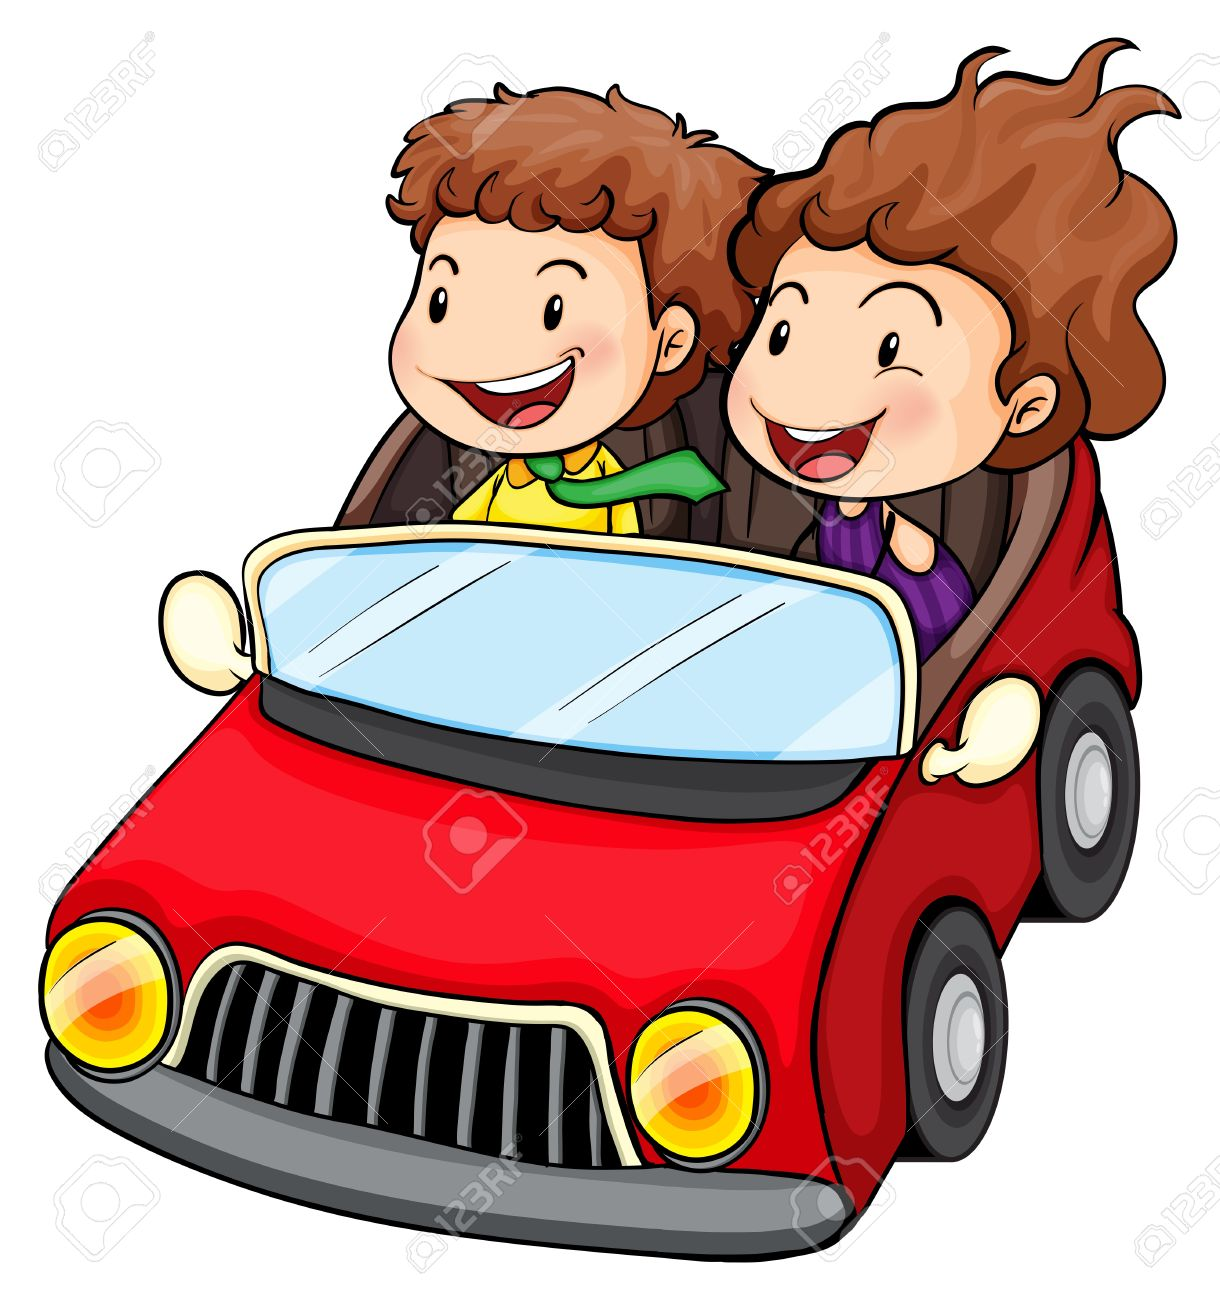 Clip Art Of Car Driving On Road